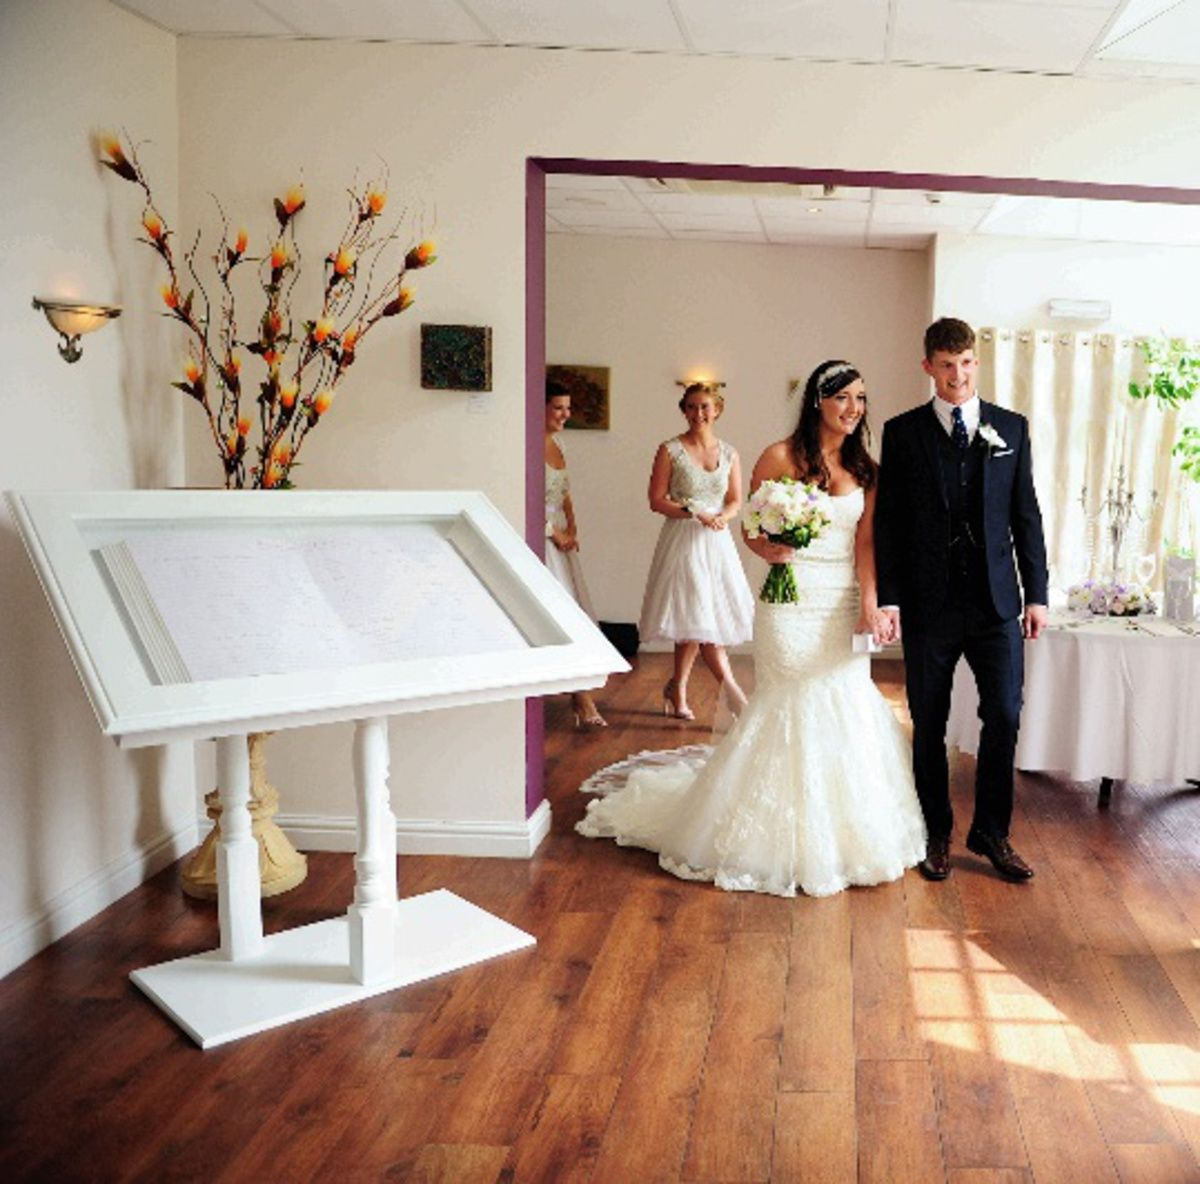 View Preloved Wedding Items For And Hire